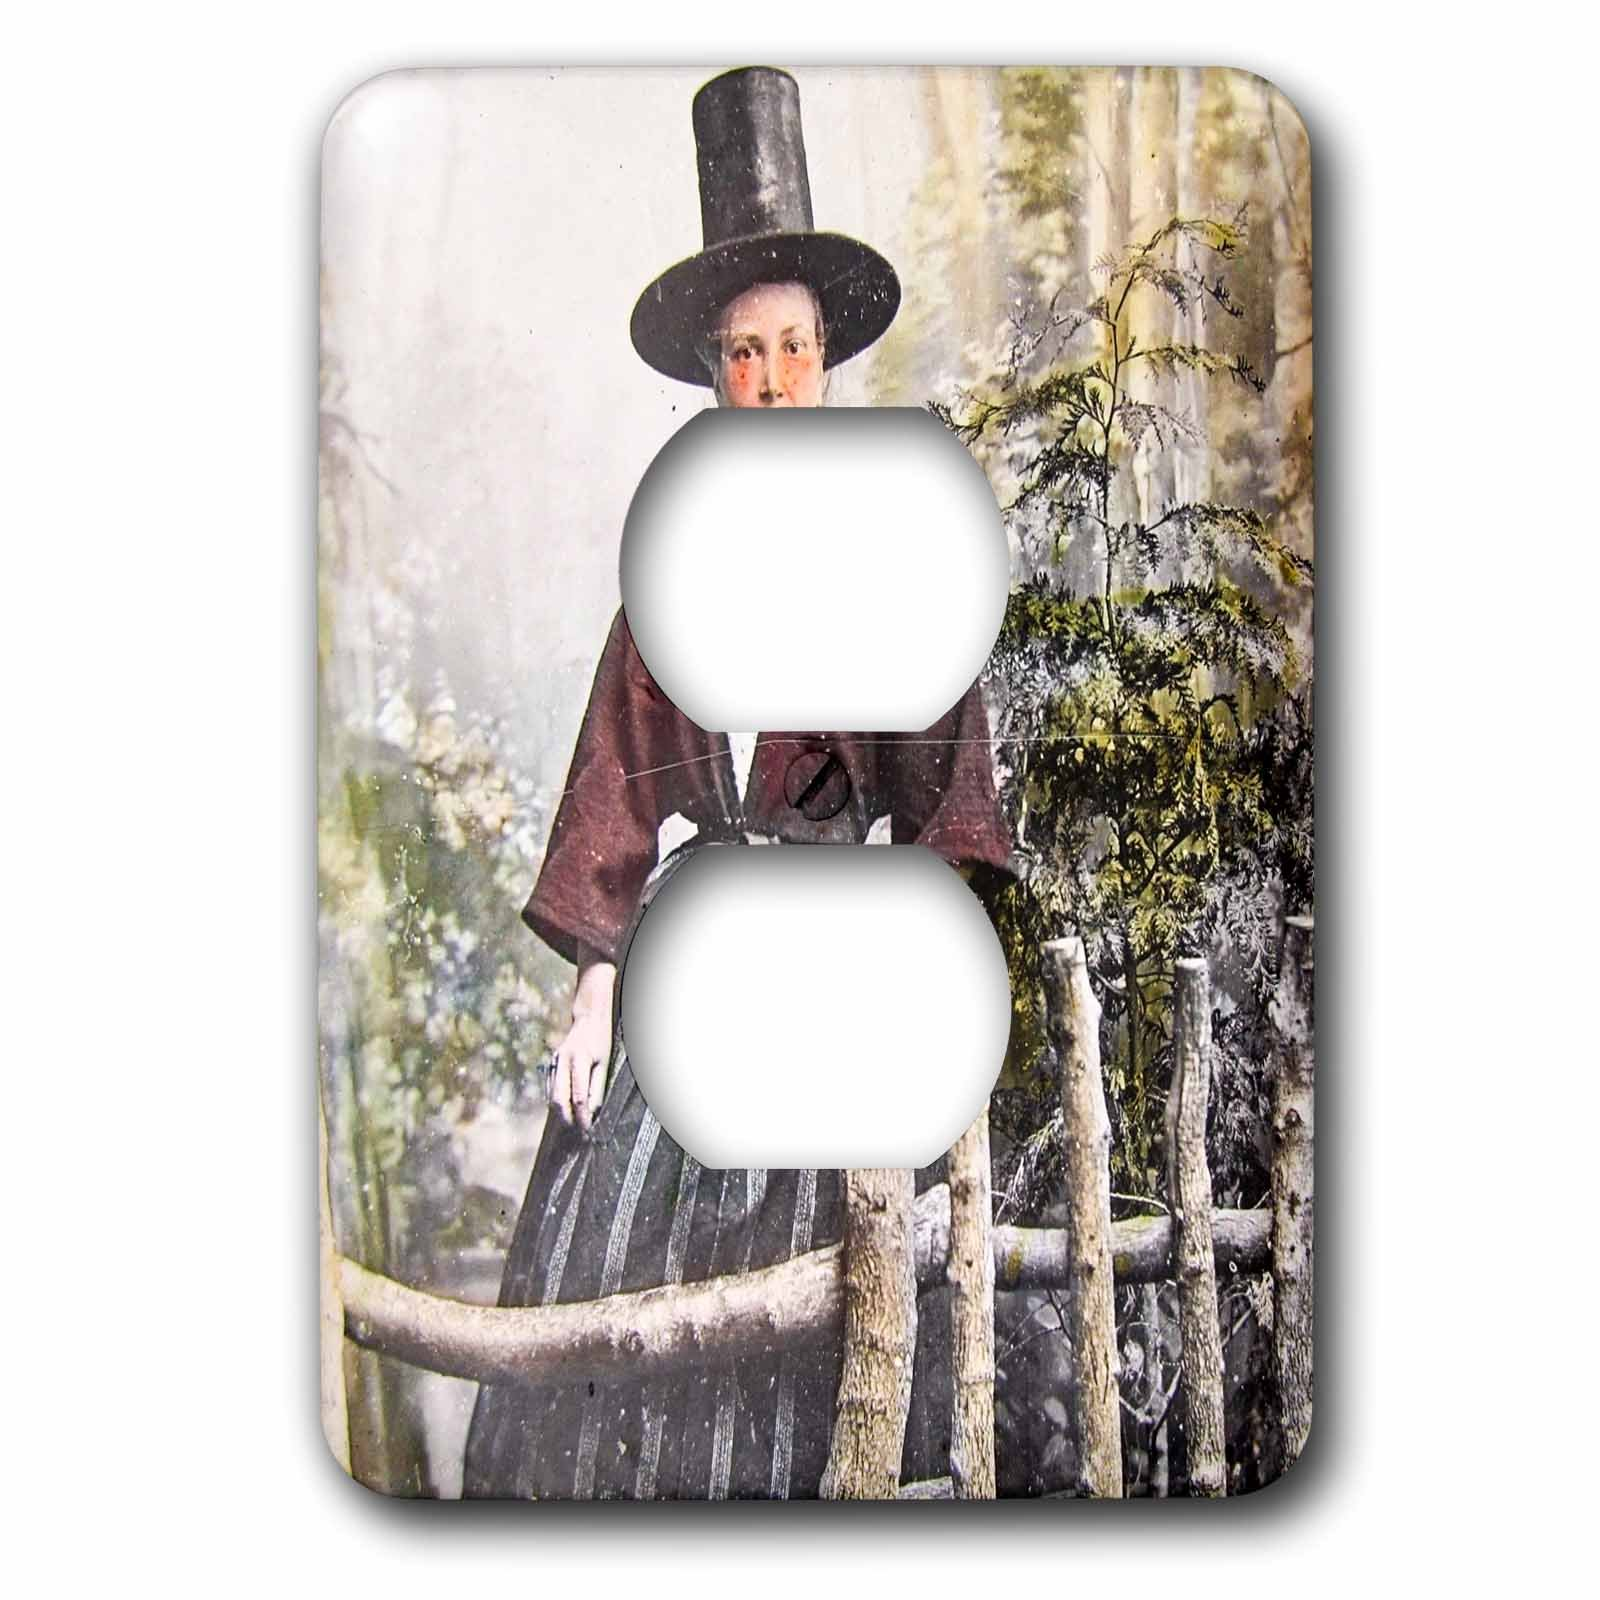 3dRose Scenes from the Past Magic Lantern Slides - Welsh Woman in Traditional Dress Circa 1890s Wales - Light Switch Covers - 2 plug outlet cover (lsp_269965_6)